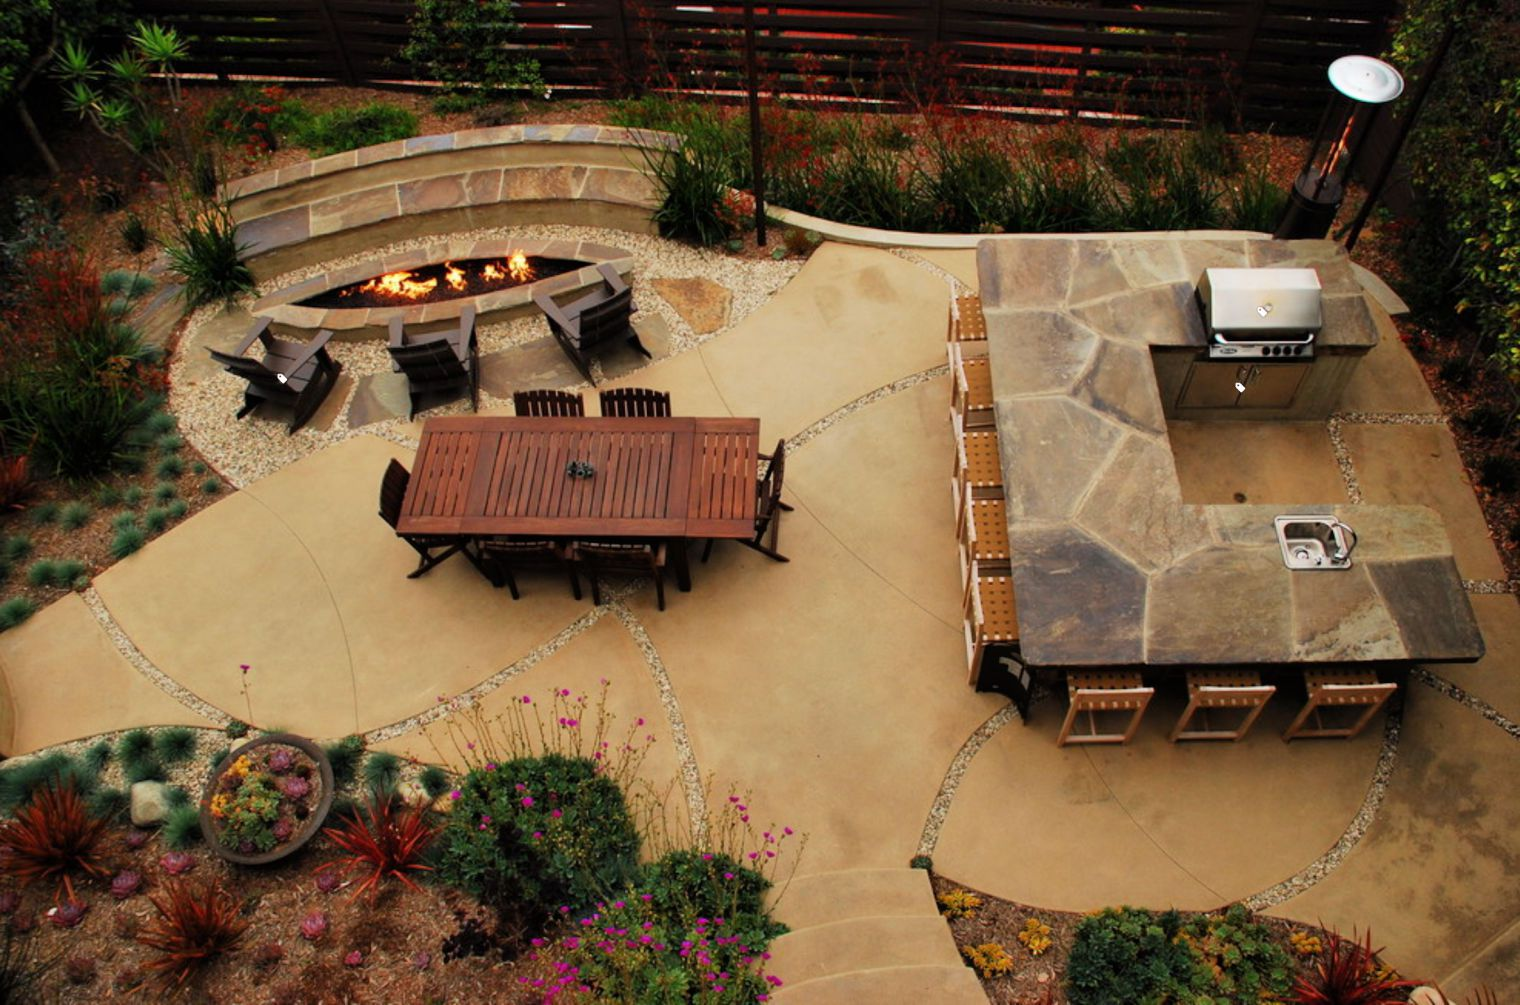 15 Beautiful Concrete Patio Ideas and Designs on Backyard Concrete Patio Designs  id=96377